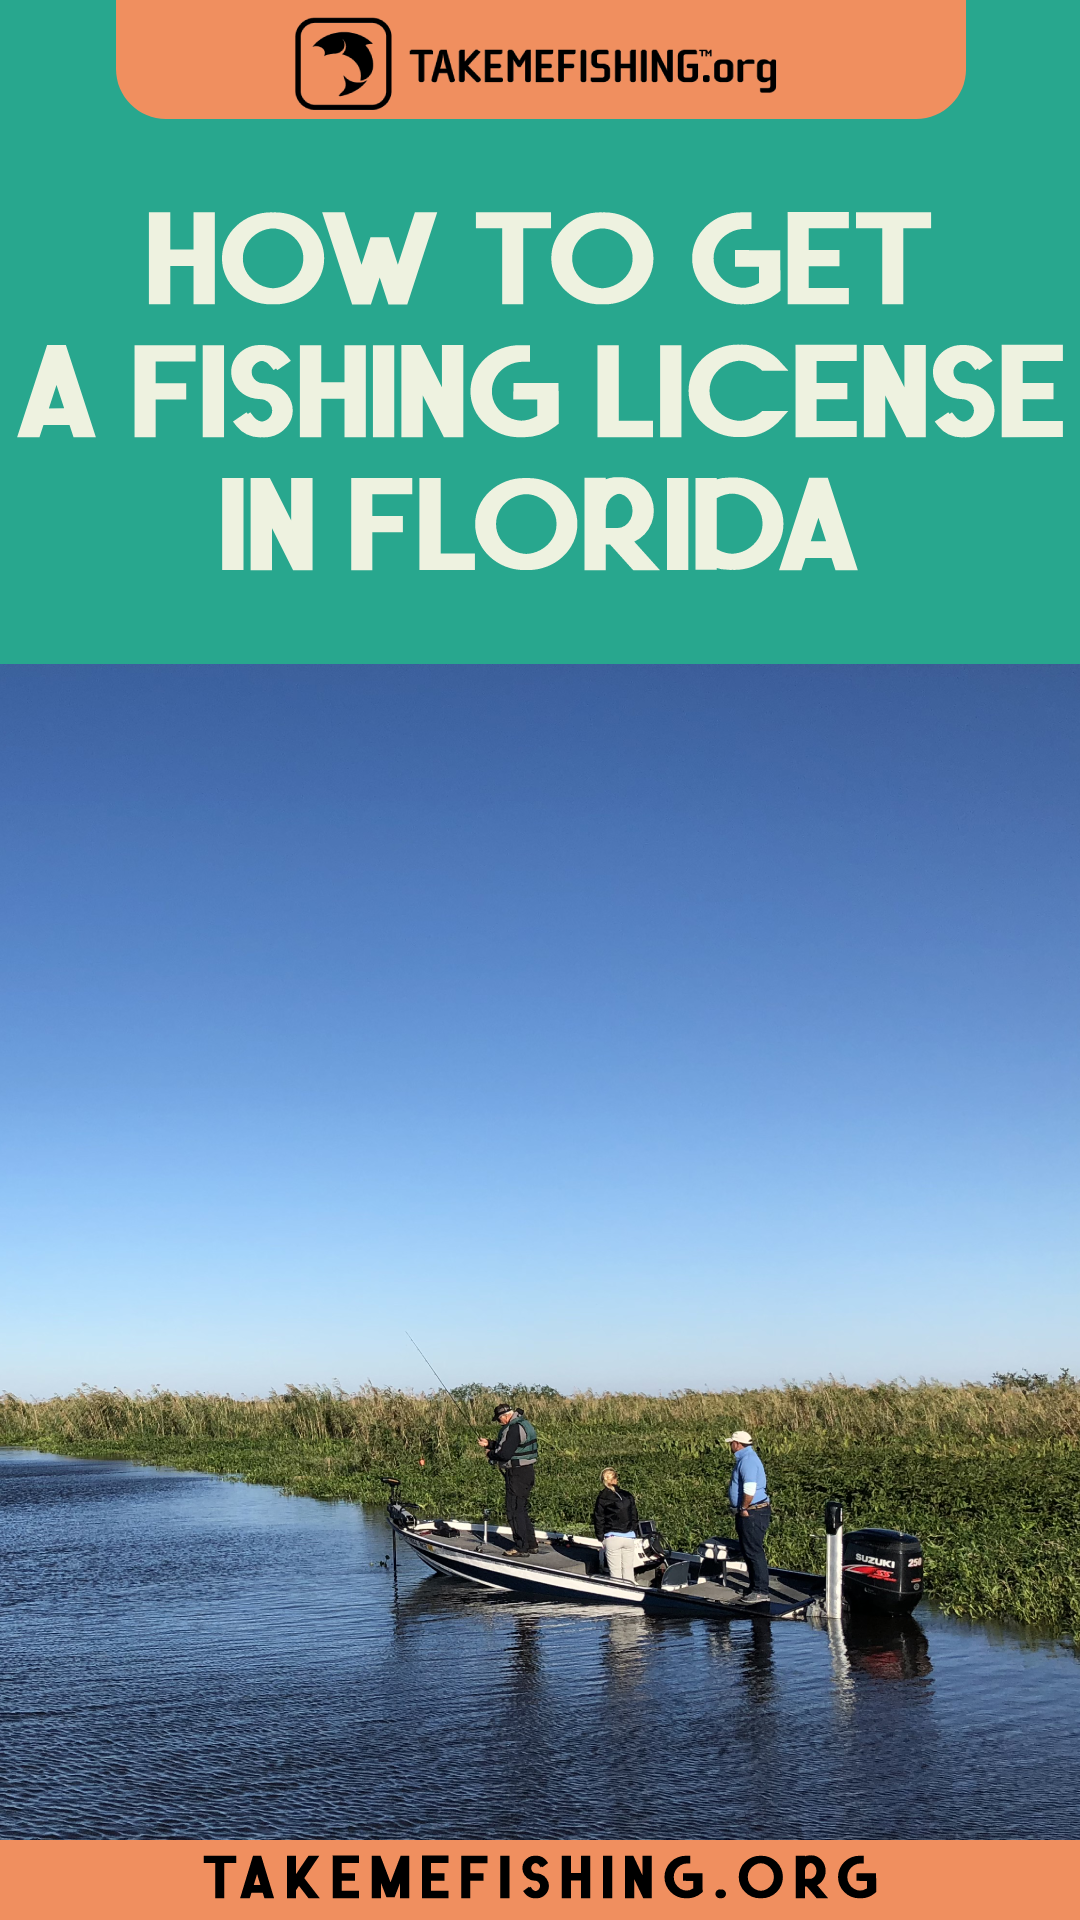 Purchase your Florida FishingLicense here in 2020